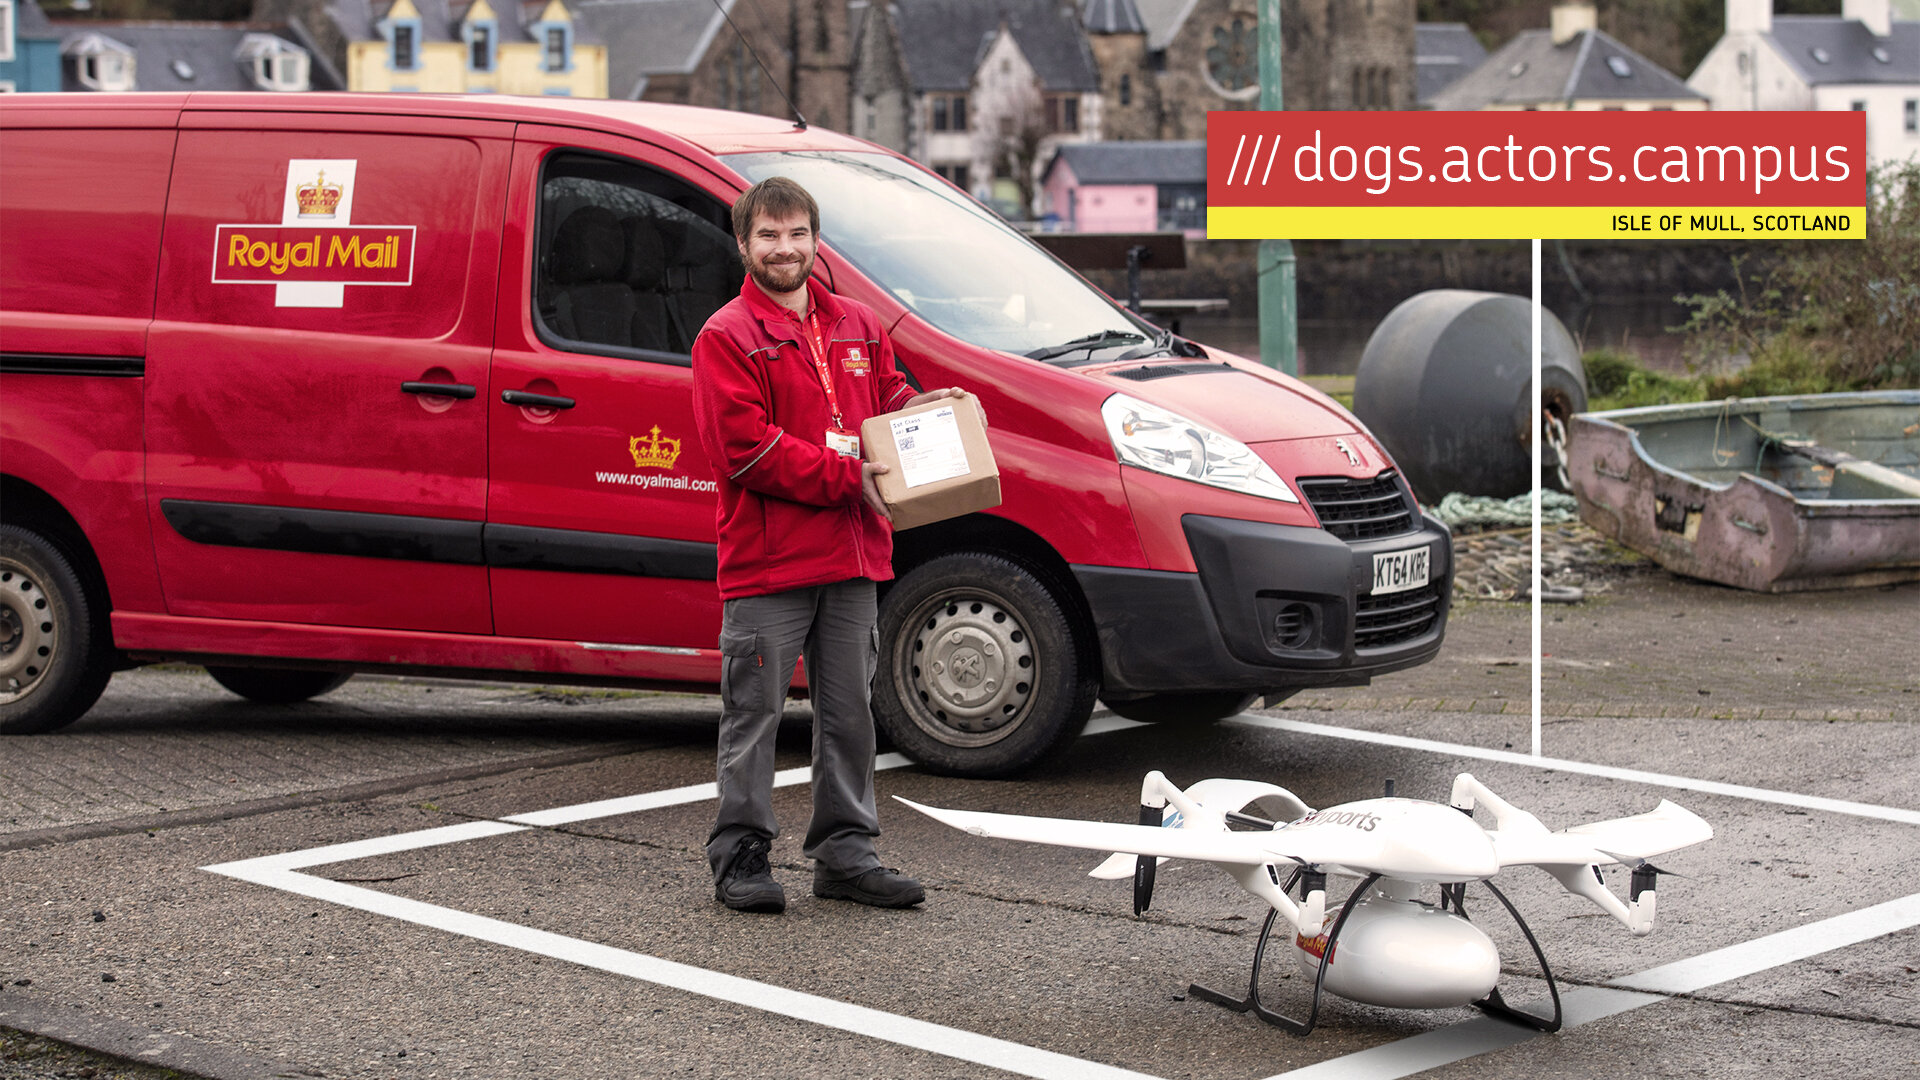 Drone Deliveries on the Isle of Mull